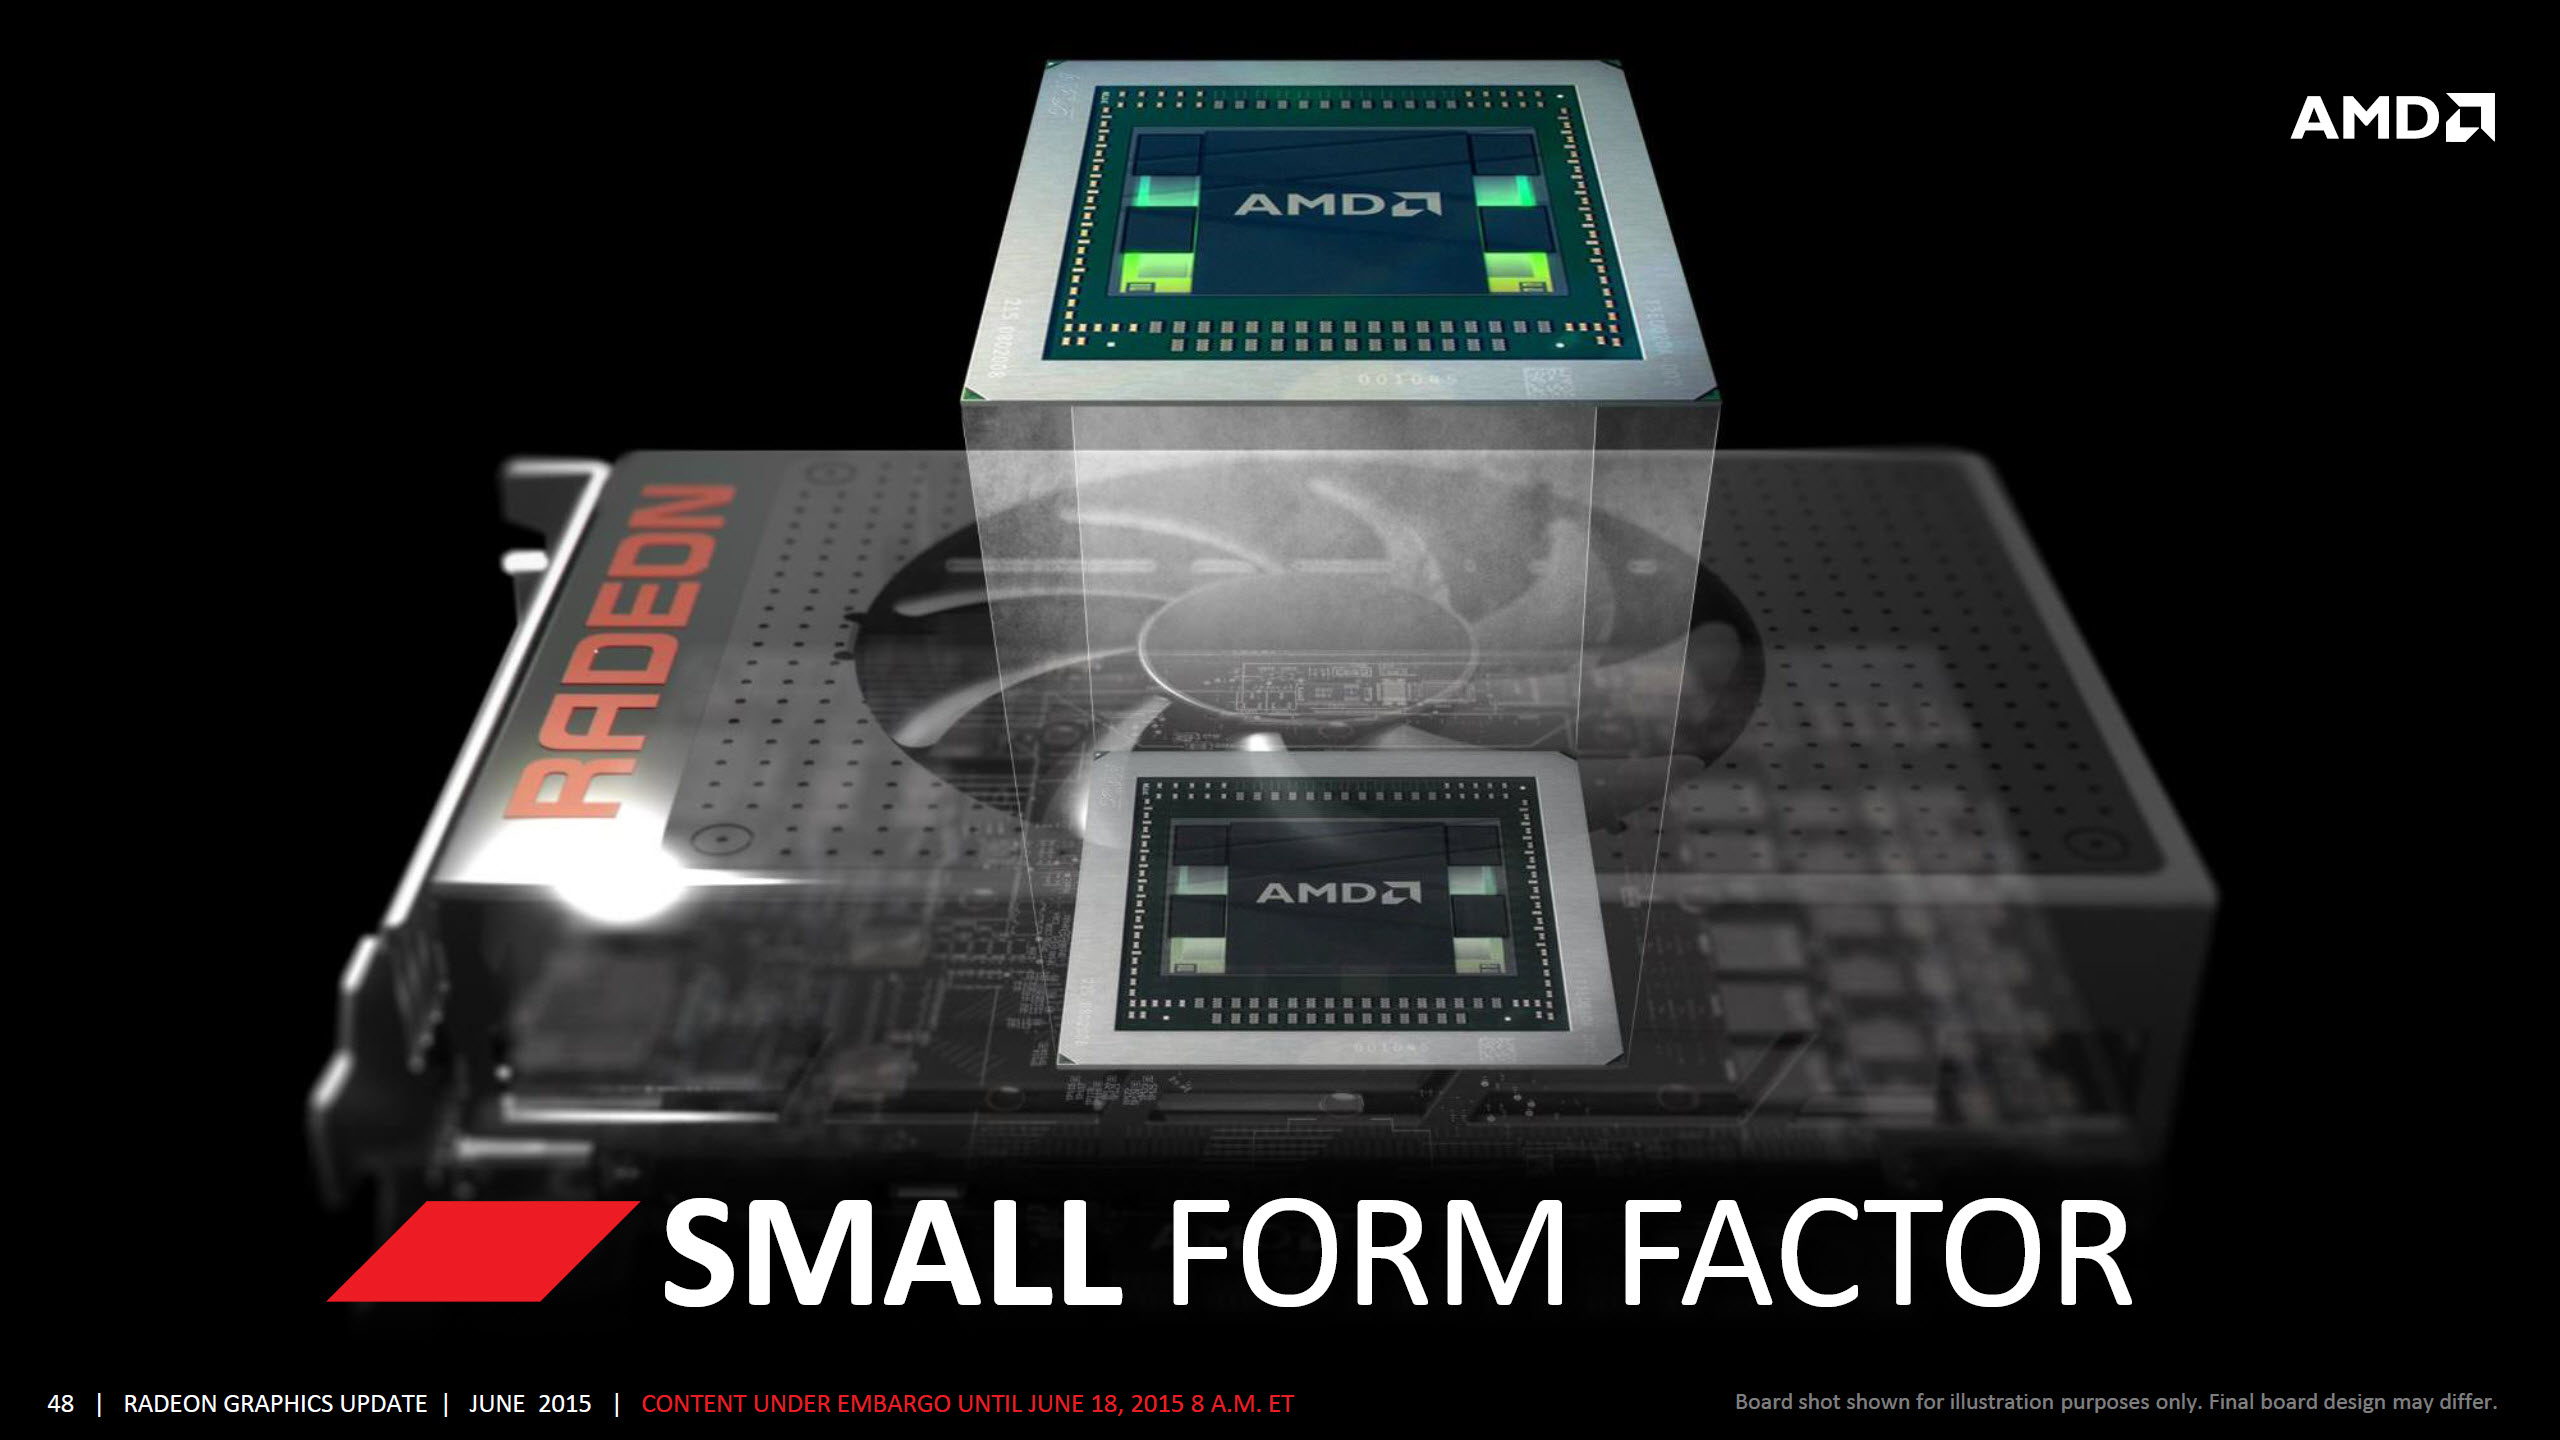 AMD Radeon R9 Nano Officially Detailed - Features Fiji GPU